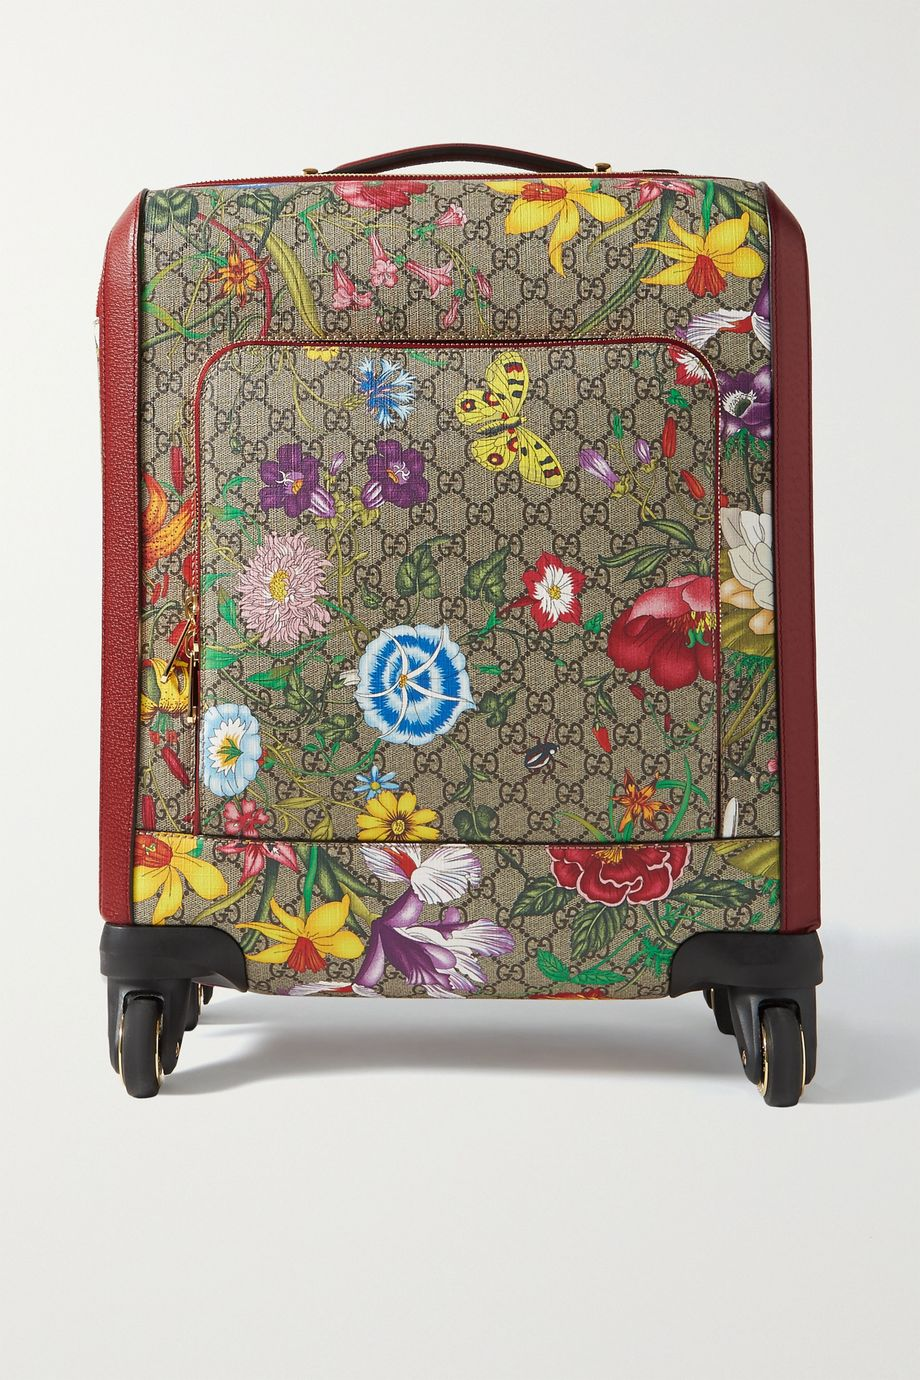 Gucci Ophidia textured leather-trimmed printed coated-canvas suitcase